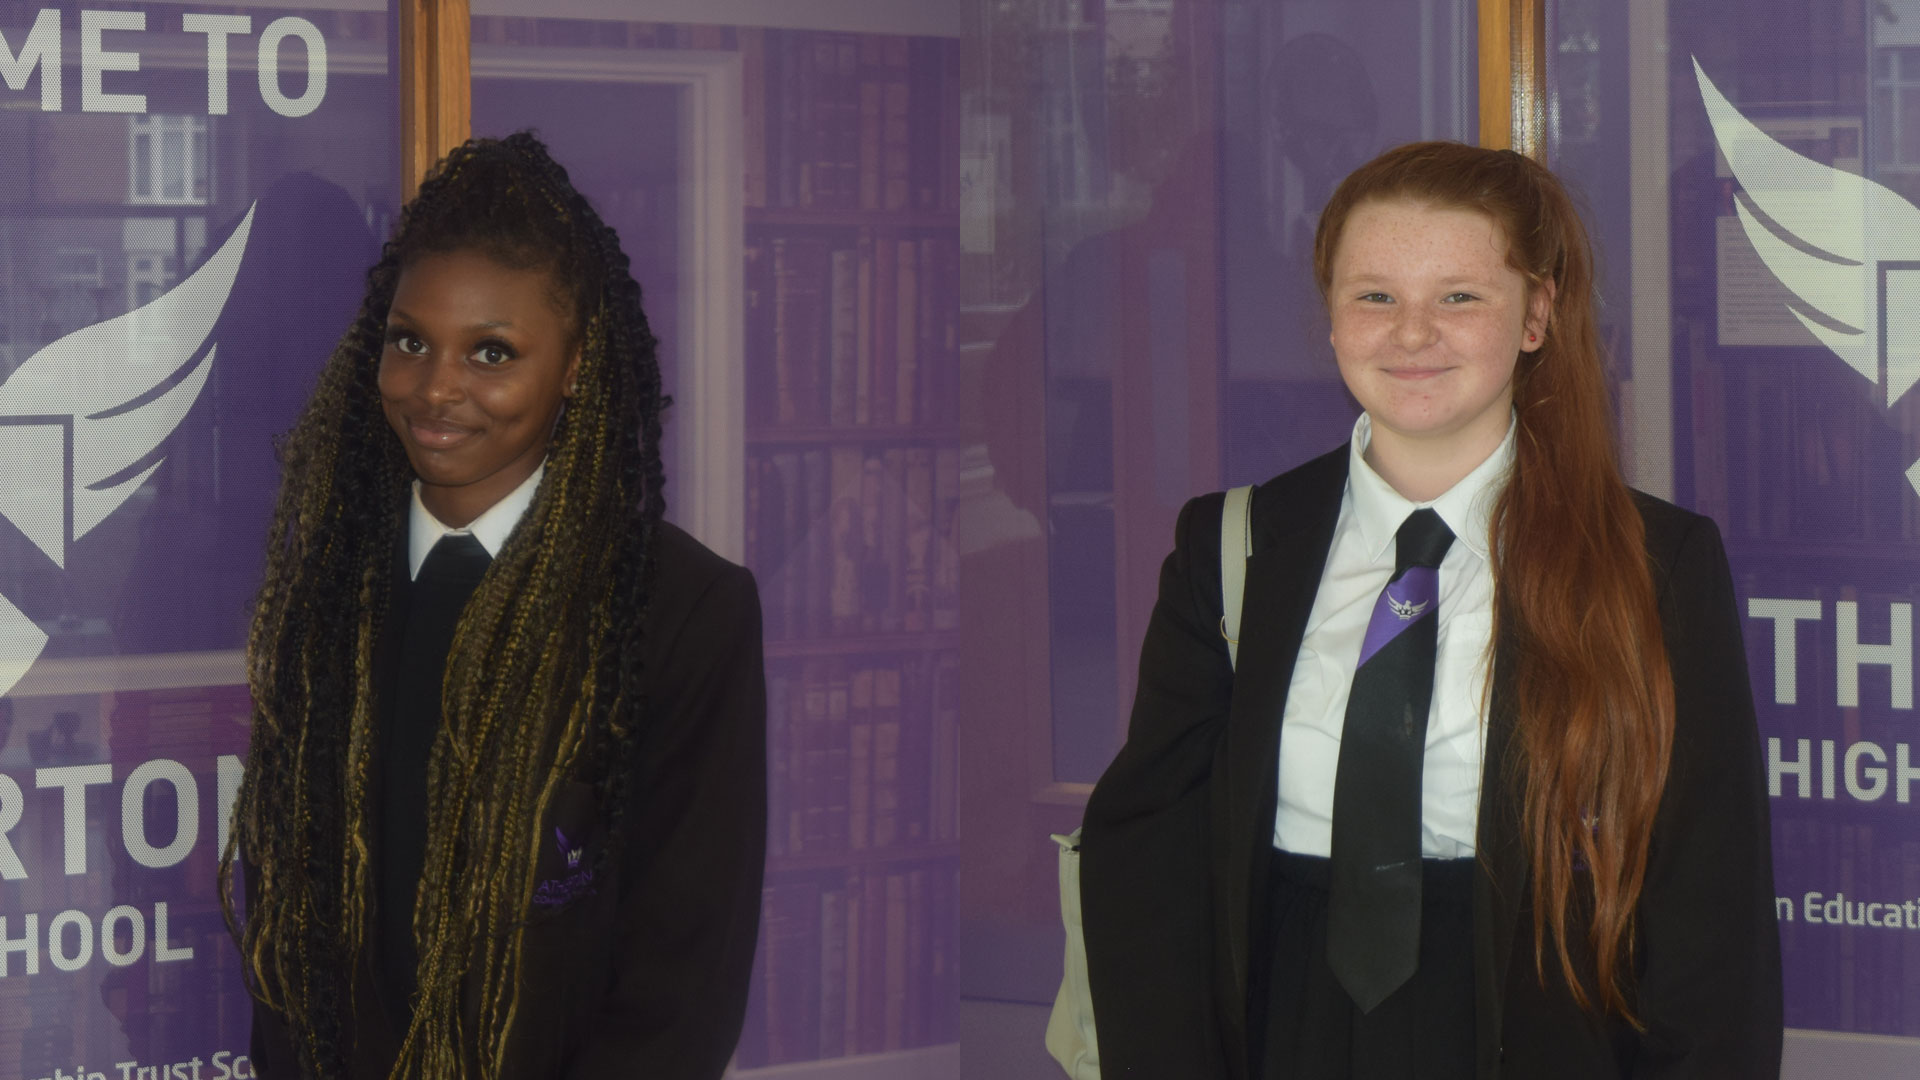 Atherton High School Students Actively Participate in Democracy